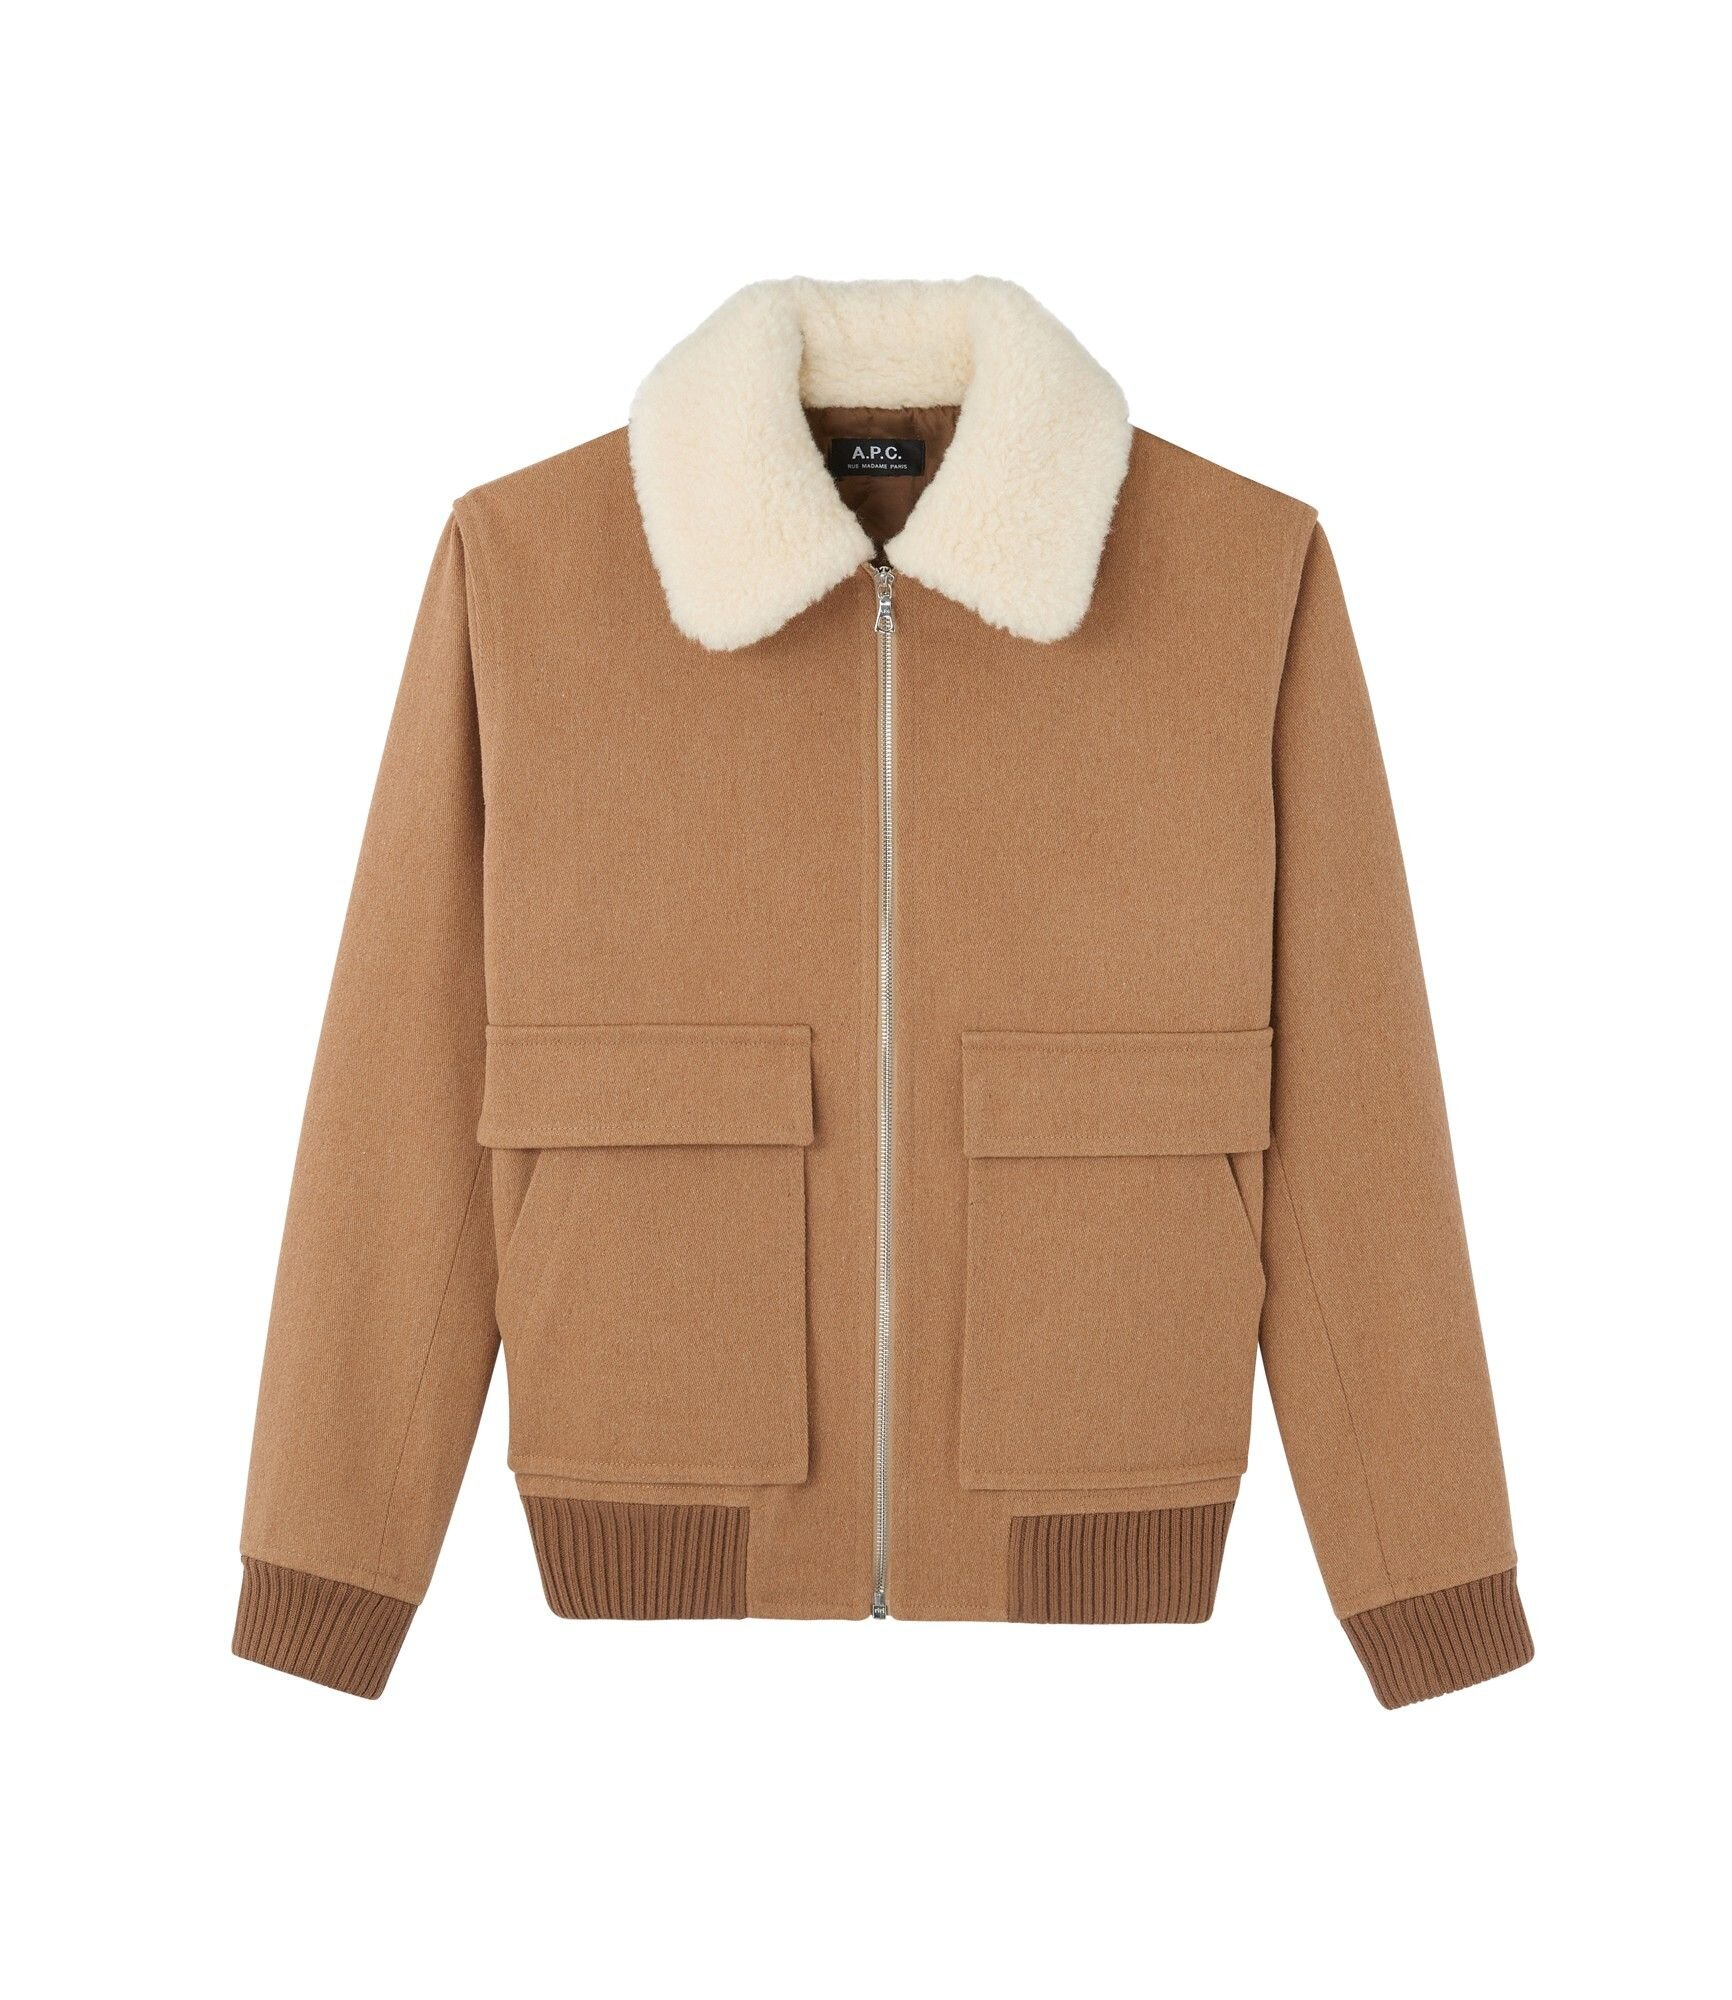 APC jacket - €485 - Some things are so perfect in every way that they will never not be desirable. Case in point to your right.